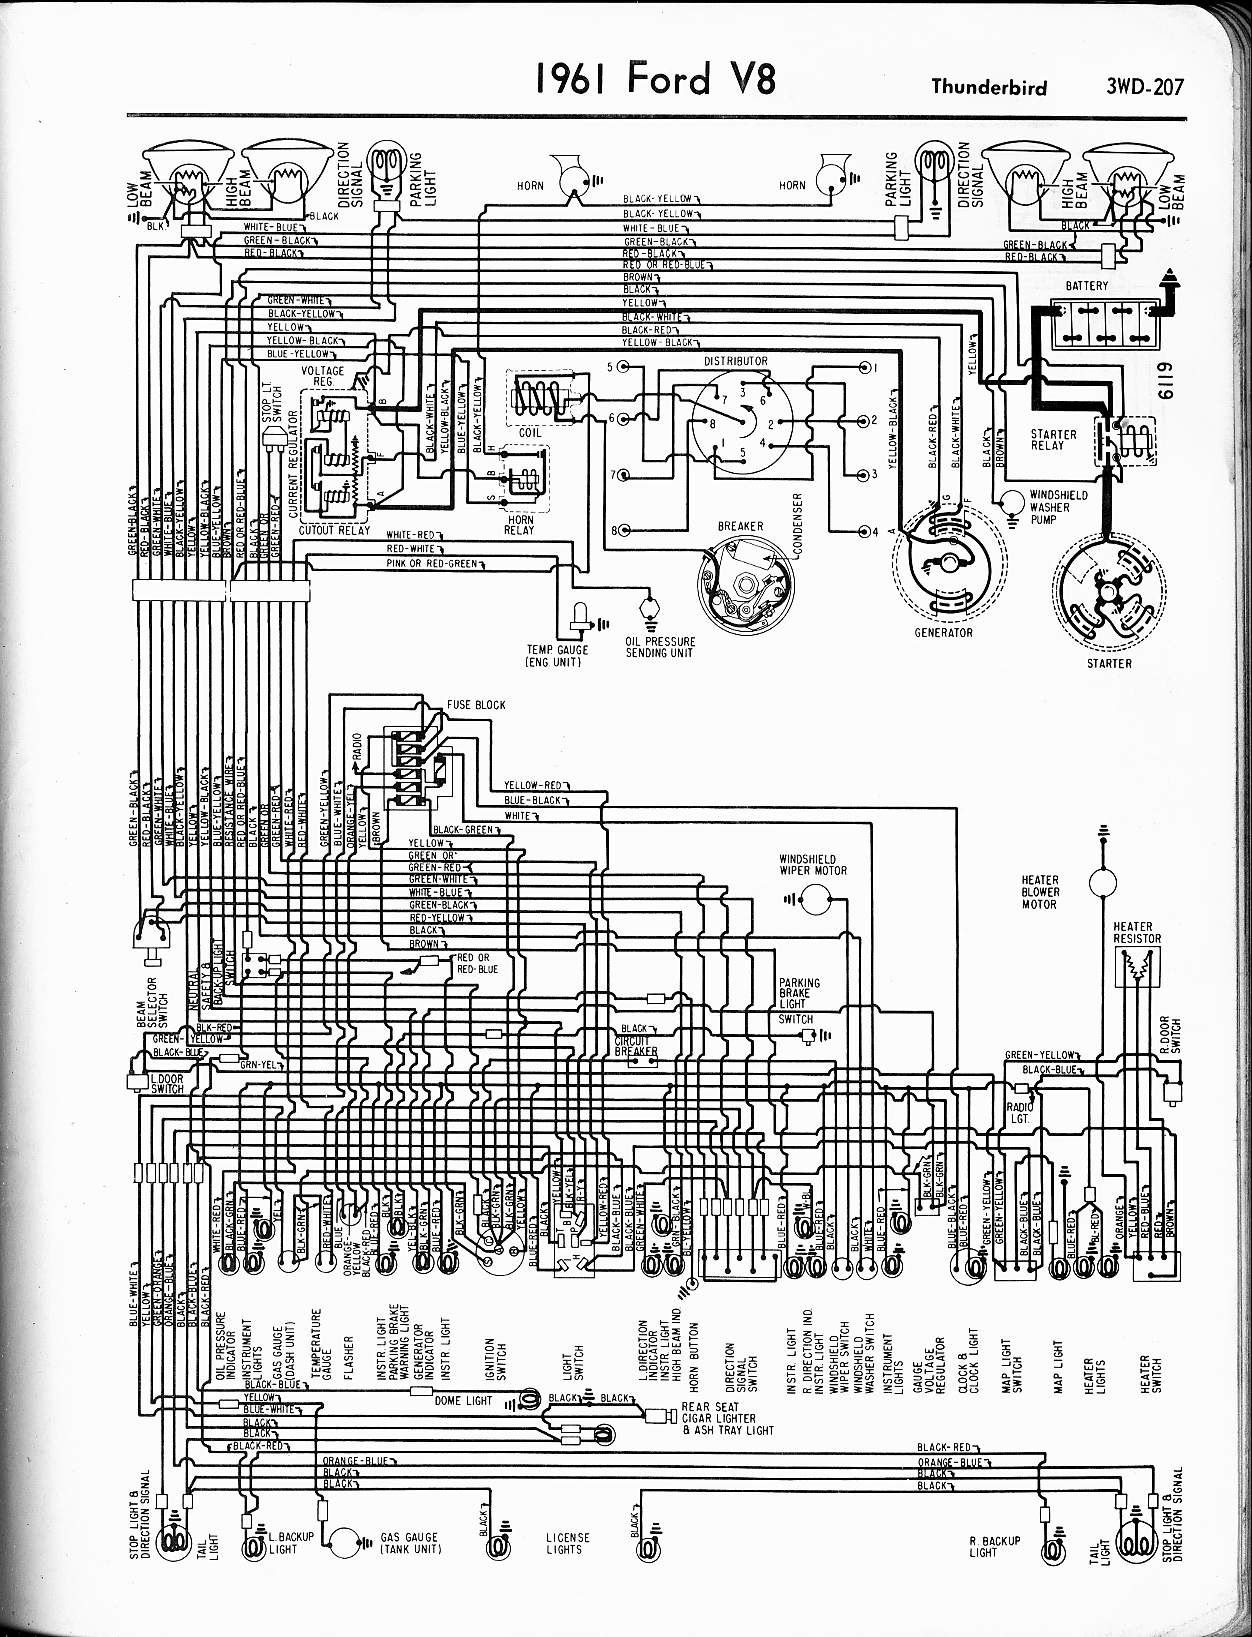 MWire5765 207 57 65 ford wiring diagrams 1965 thunderbird wiring harness at bakdesigns.co